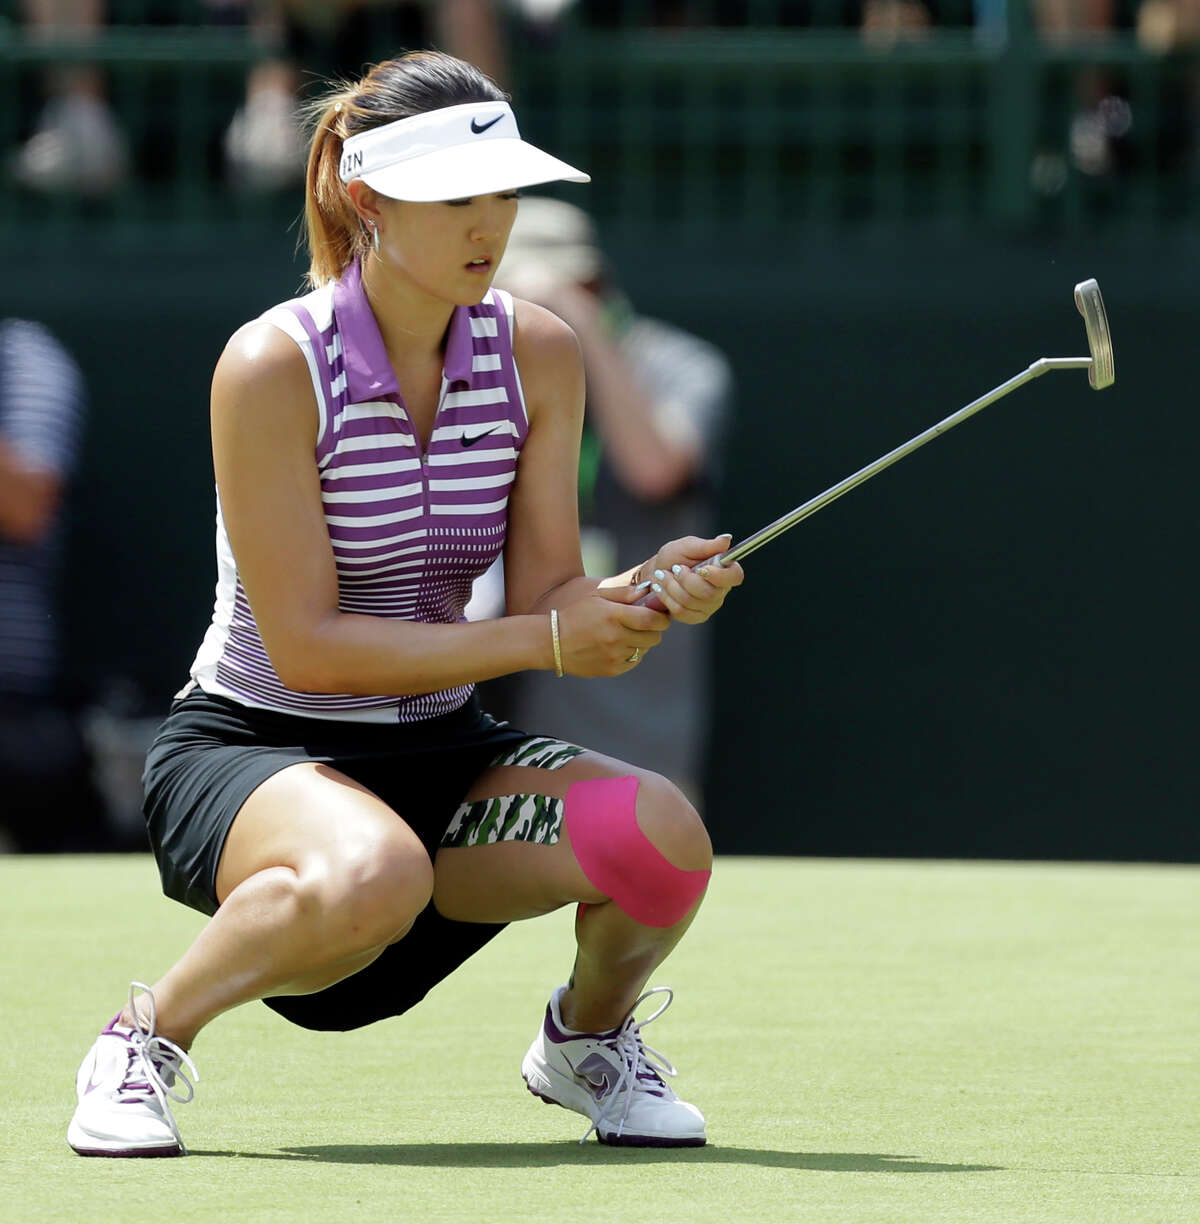 Michelle Wie reacts after missing a putt on the fifth hole during the third round of the U.S. Women's Open golf tournament in Pinehurst, N.C., Saturday, June 21, 2014. (AP Photo/Bob Leverone) ORG XMIT: NCCB123